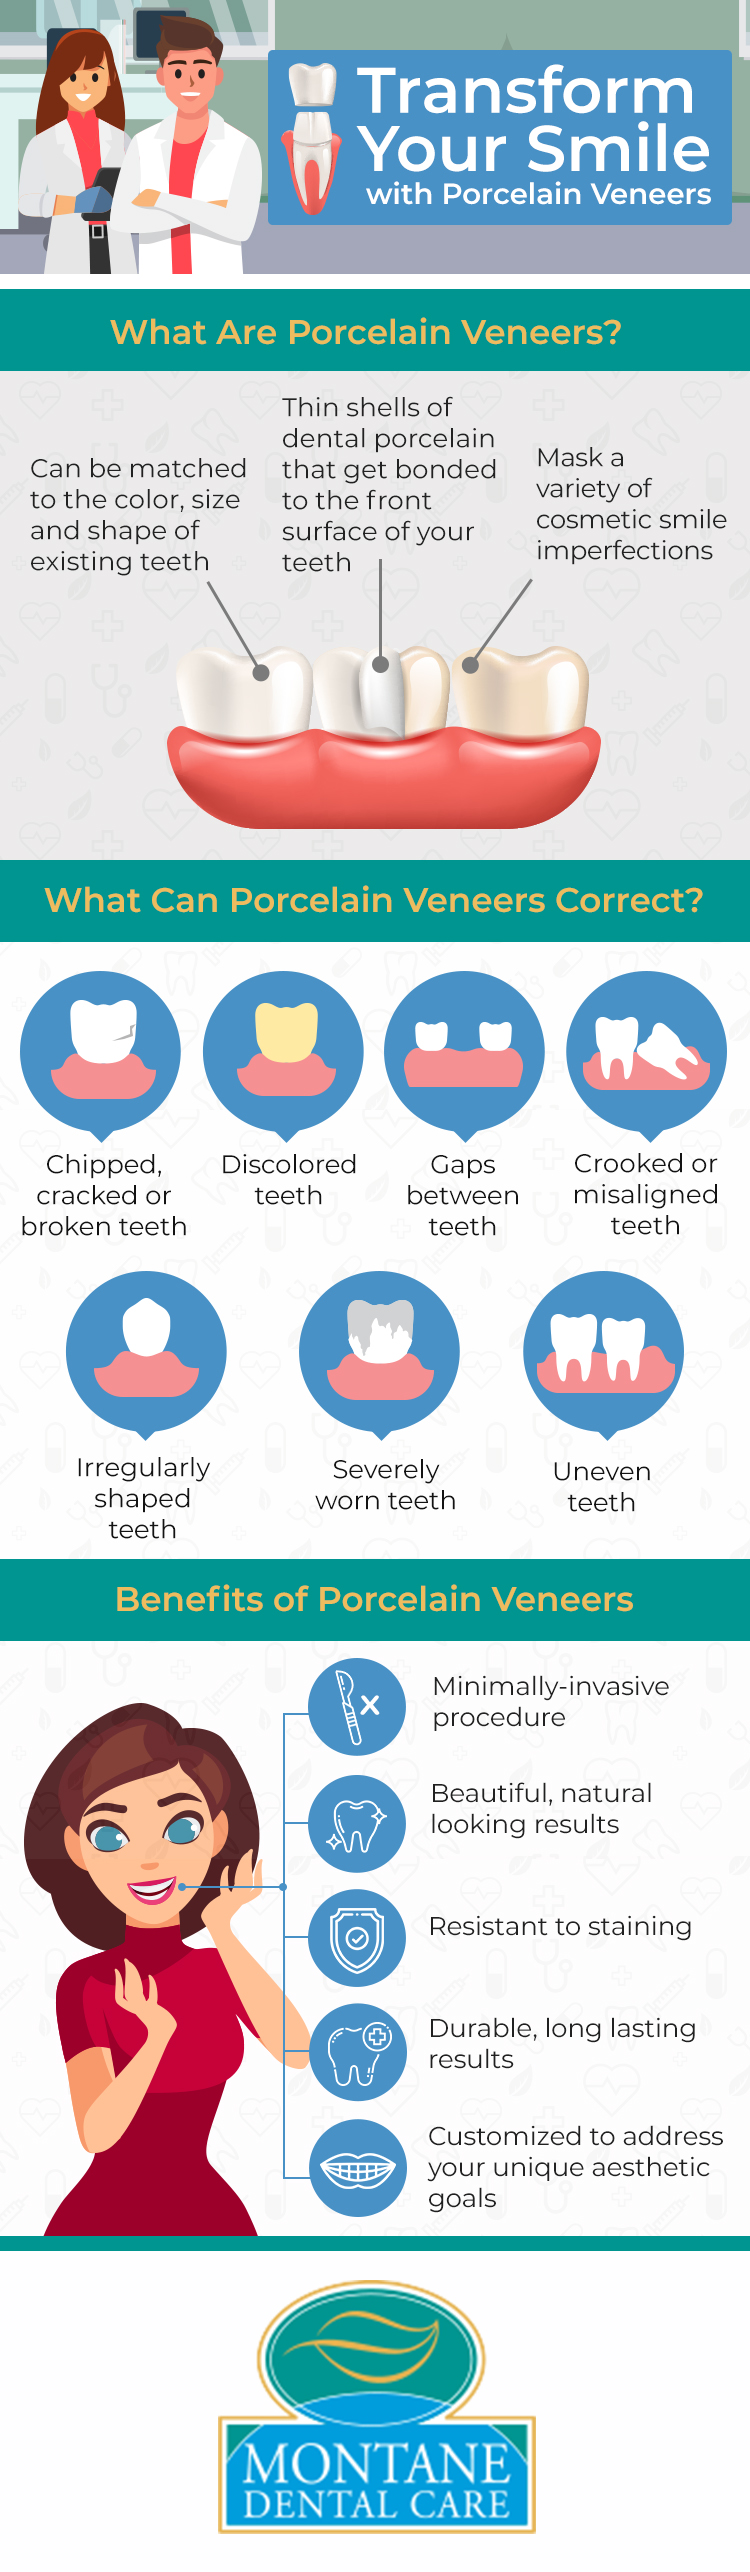 infgraphic illustrating how porcelain veneers will transform your smile